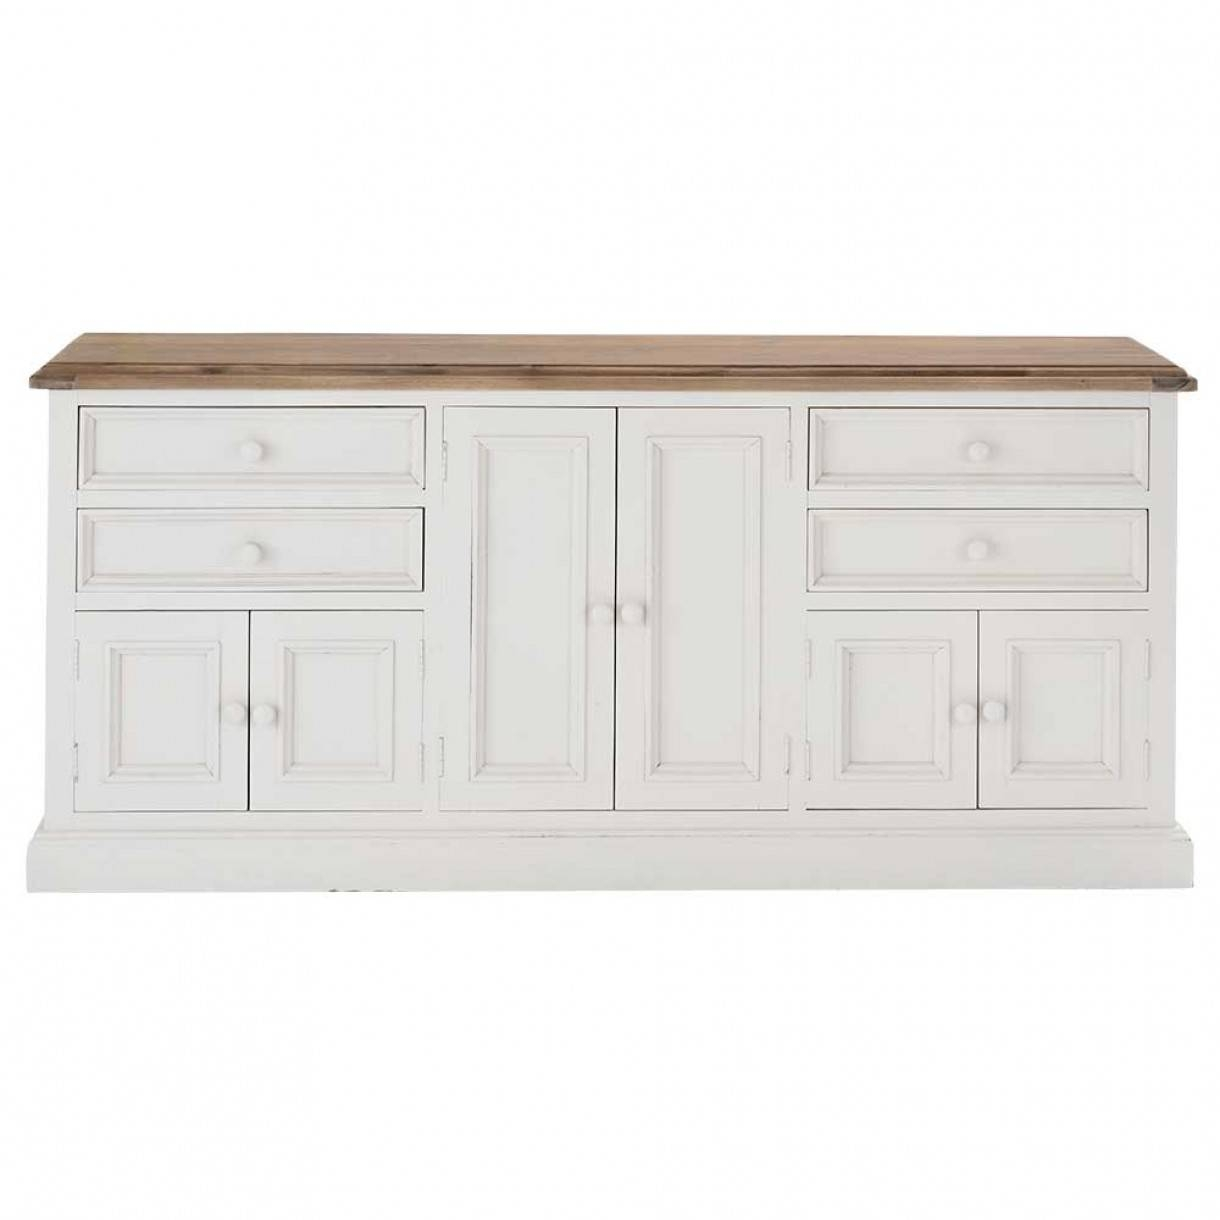 Buy Buffets And Sideboards Online | Dining | Early Settler Furniture within Large White Sideboards (Image 5 of 30)